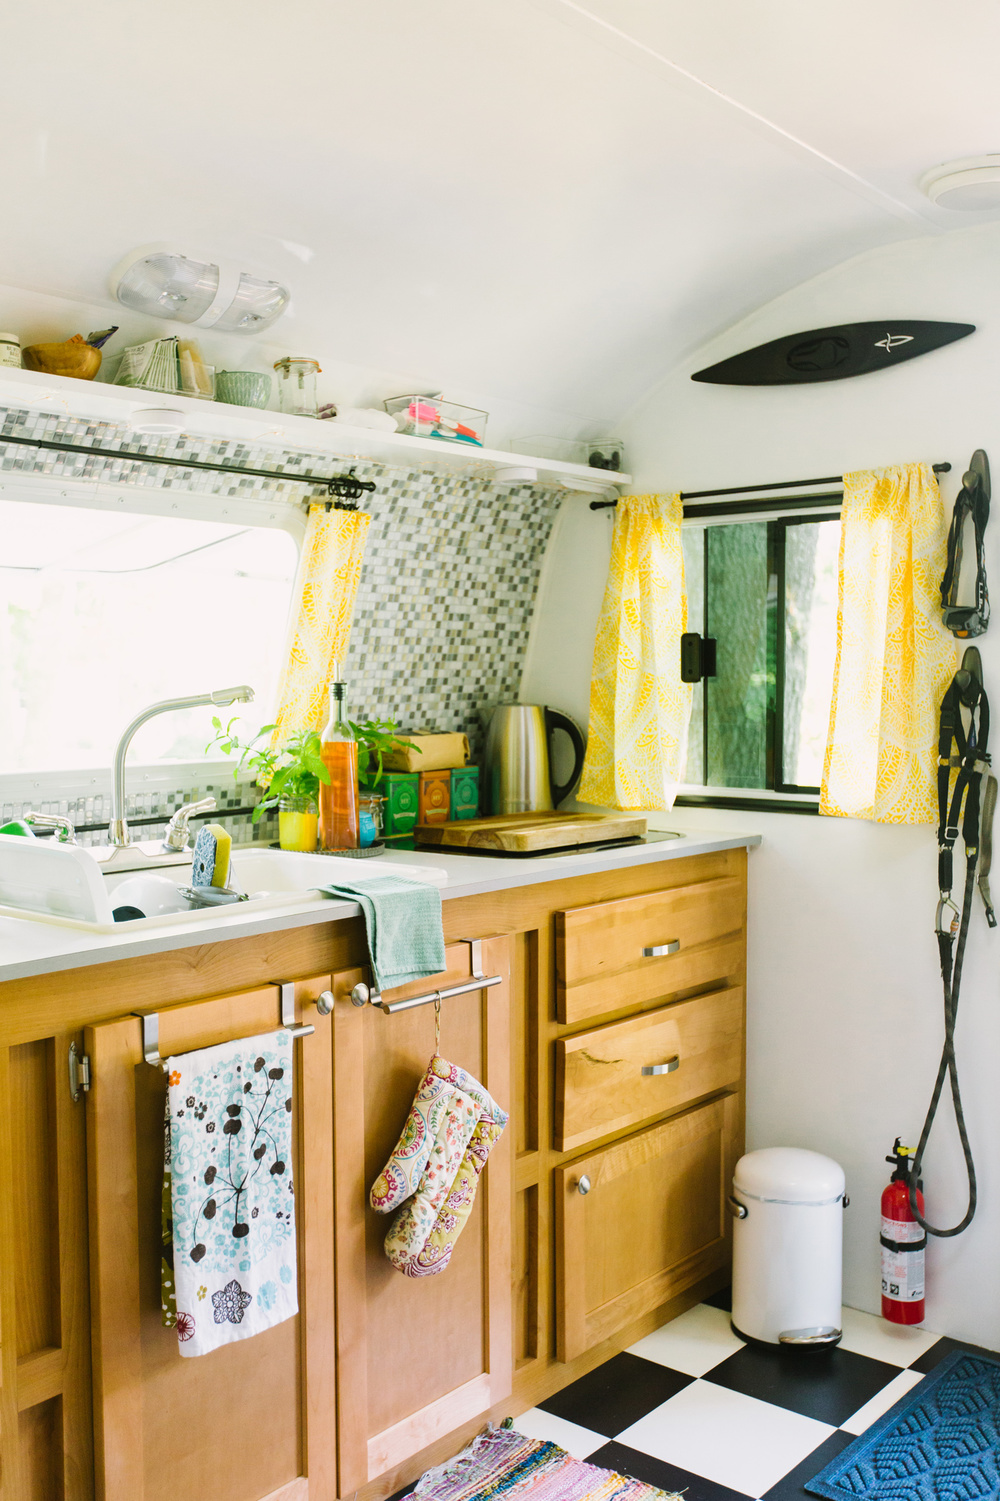 CindyGiovagnoli_CamperRenovation_VintageCamper_Trailer_Reno-025.jpg